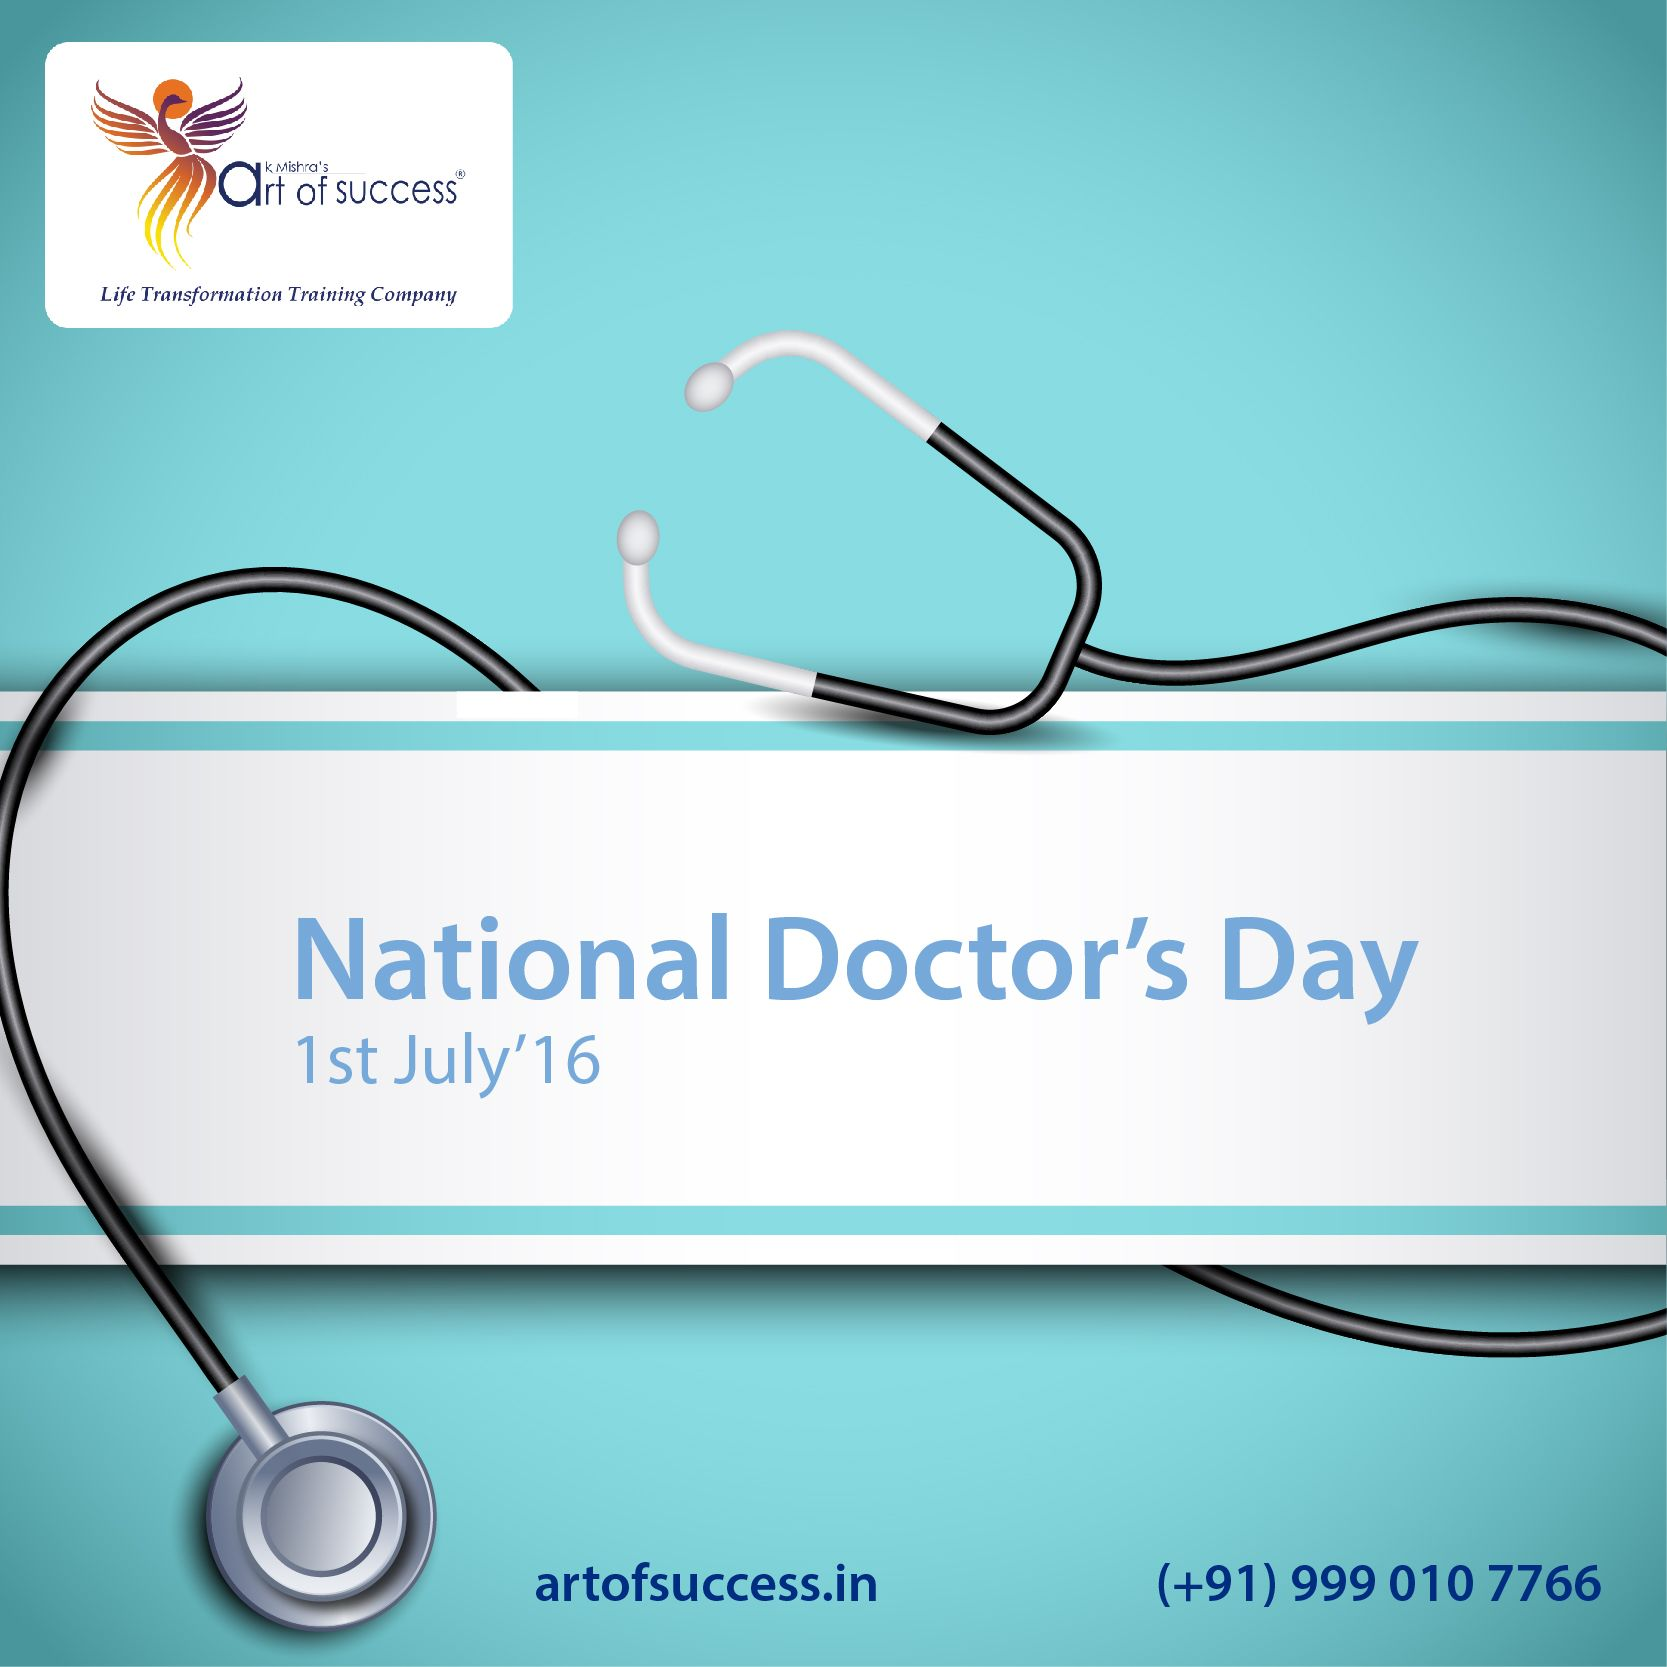 National Doctors Day is observed on 1st July every year in